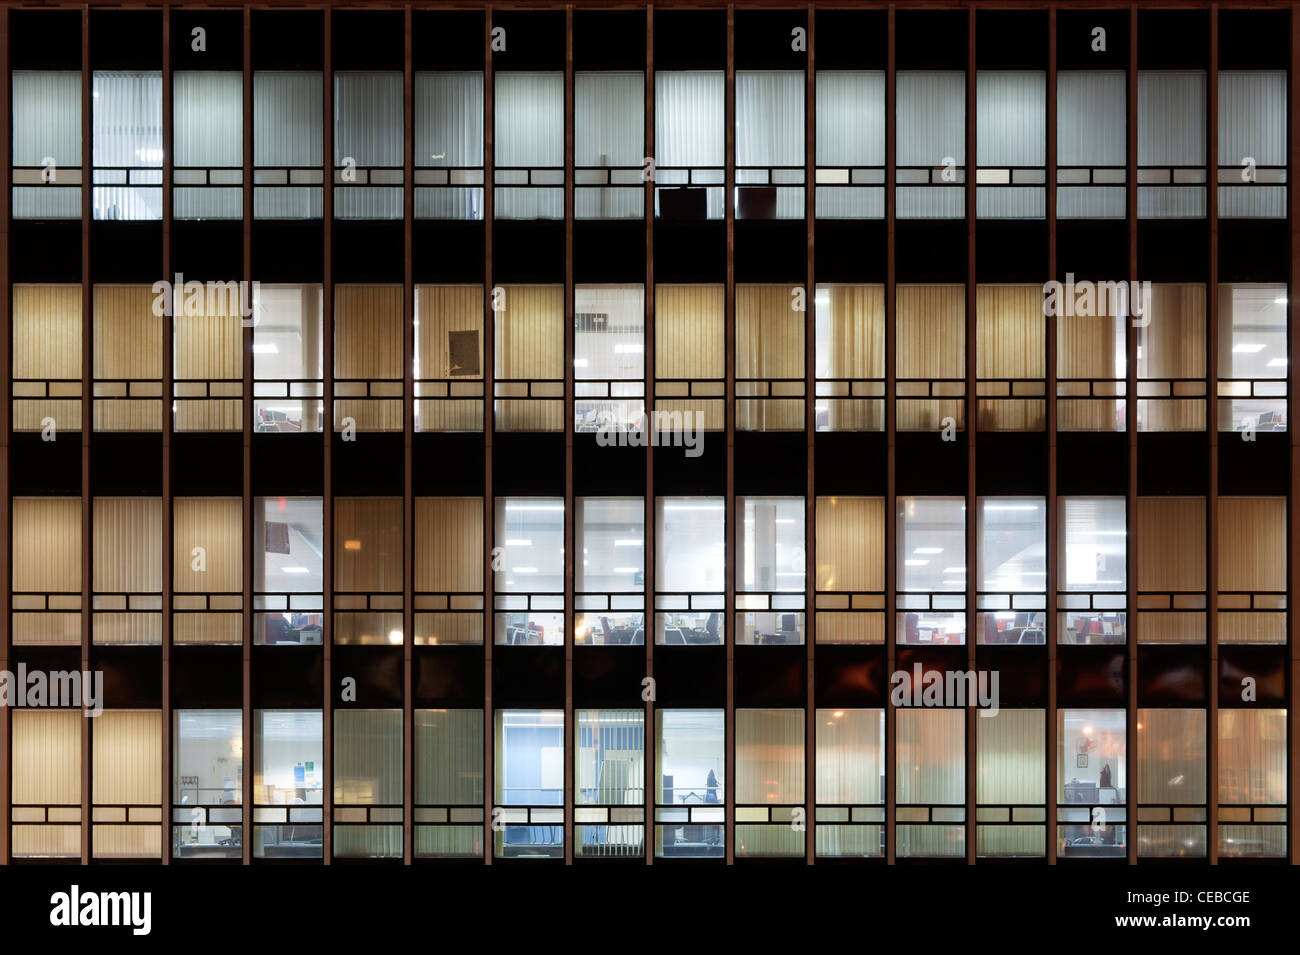 The grid windows of the CIS Tower offices located on Miller Street, Manchester, taken at night. - Stock Image